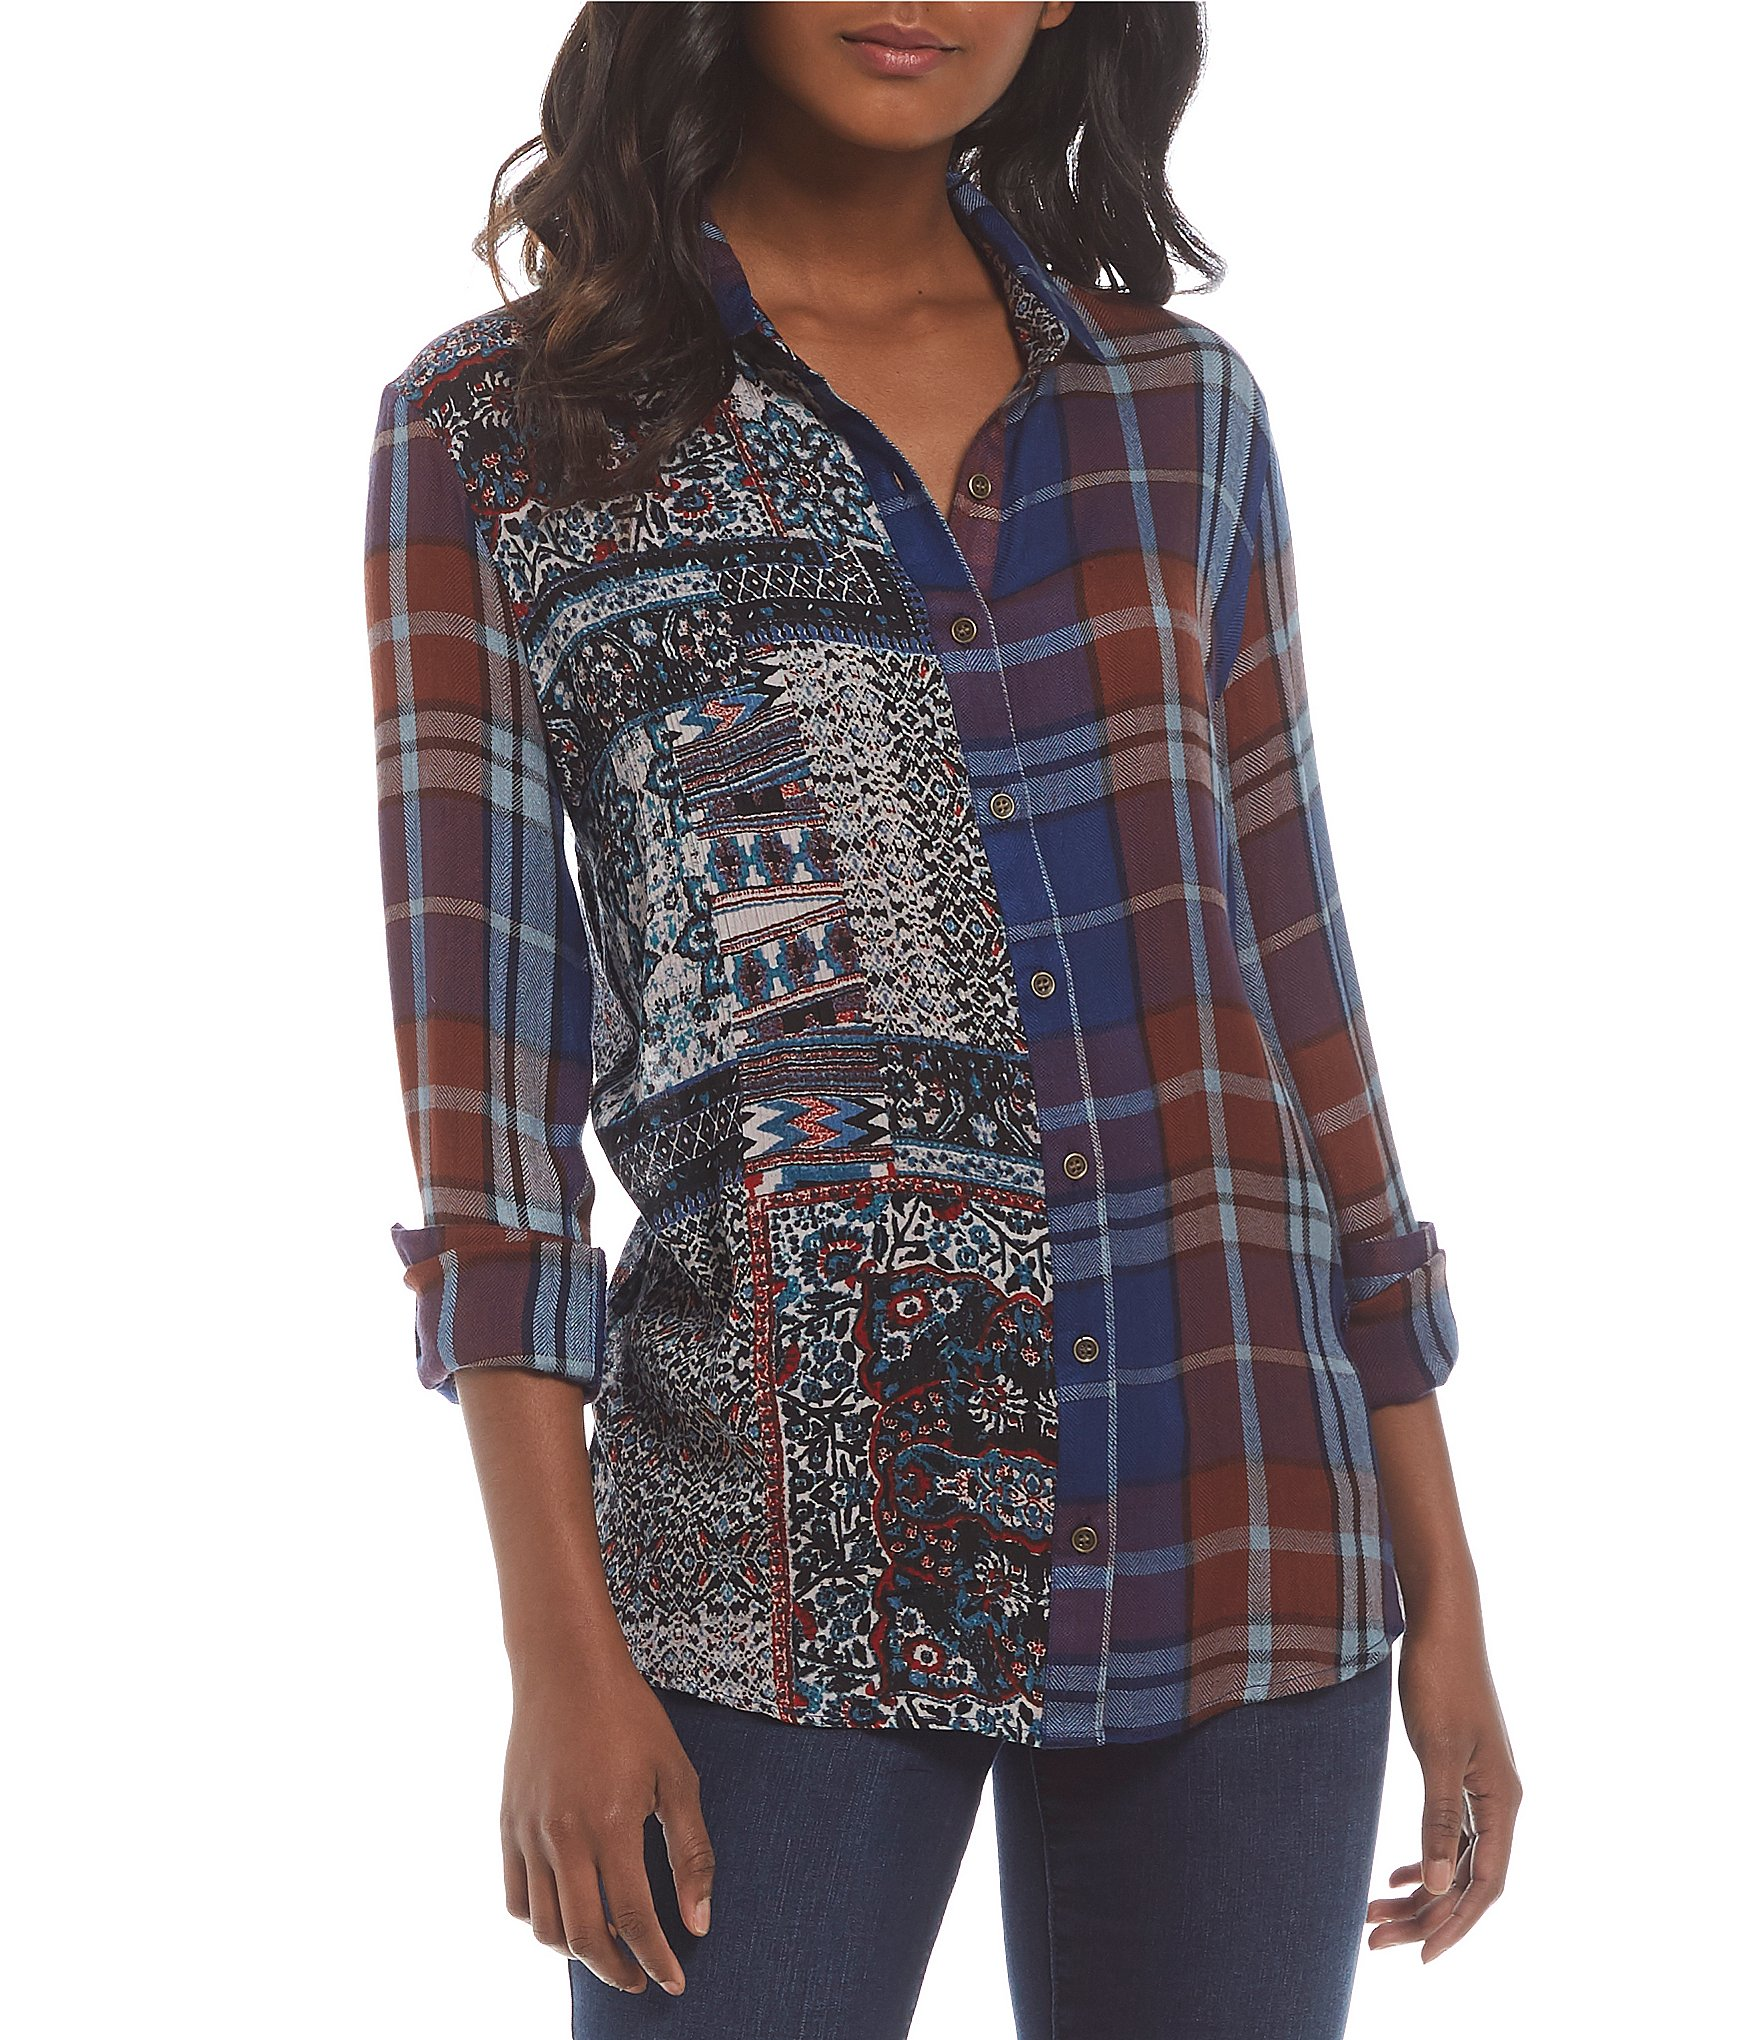 Tru luxe jeans mixed print plaid shirt dillards for Mixed plaid shirt mens